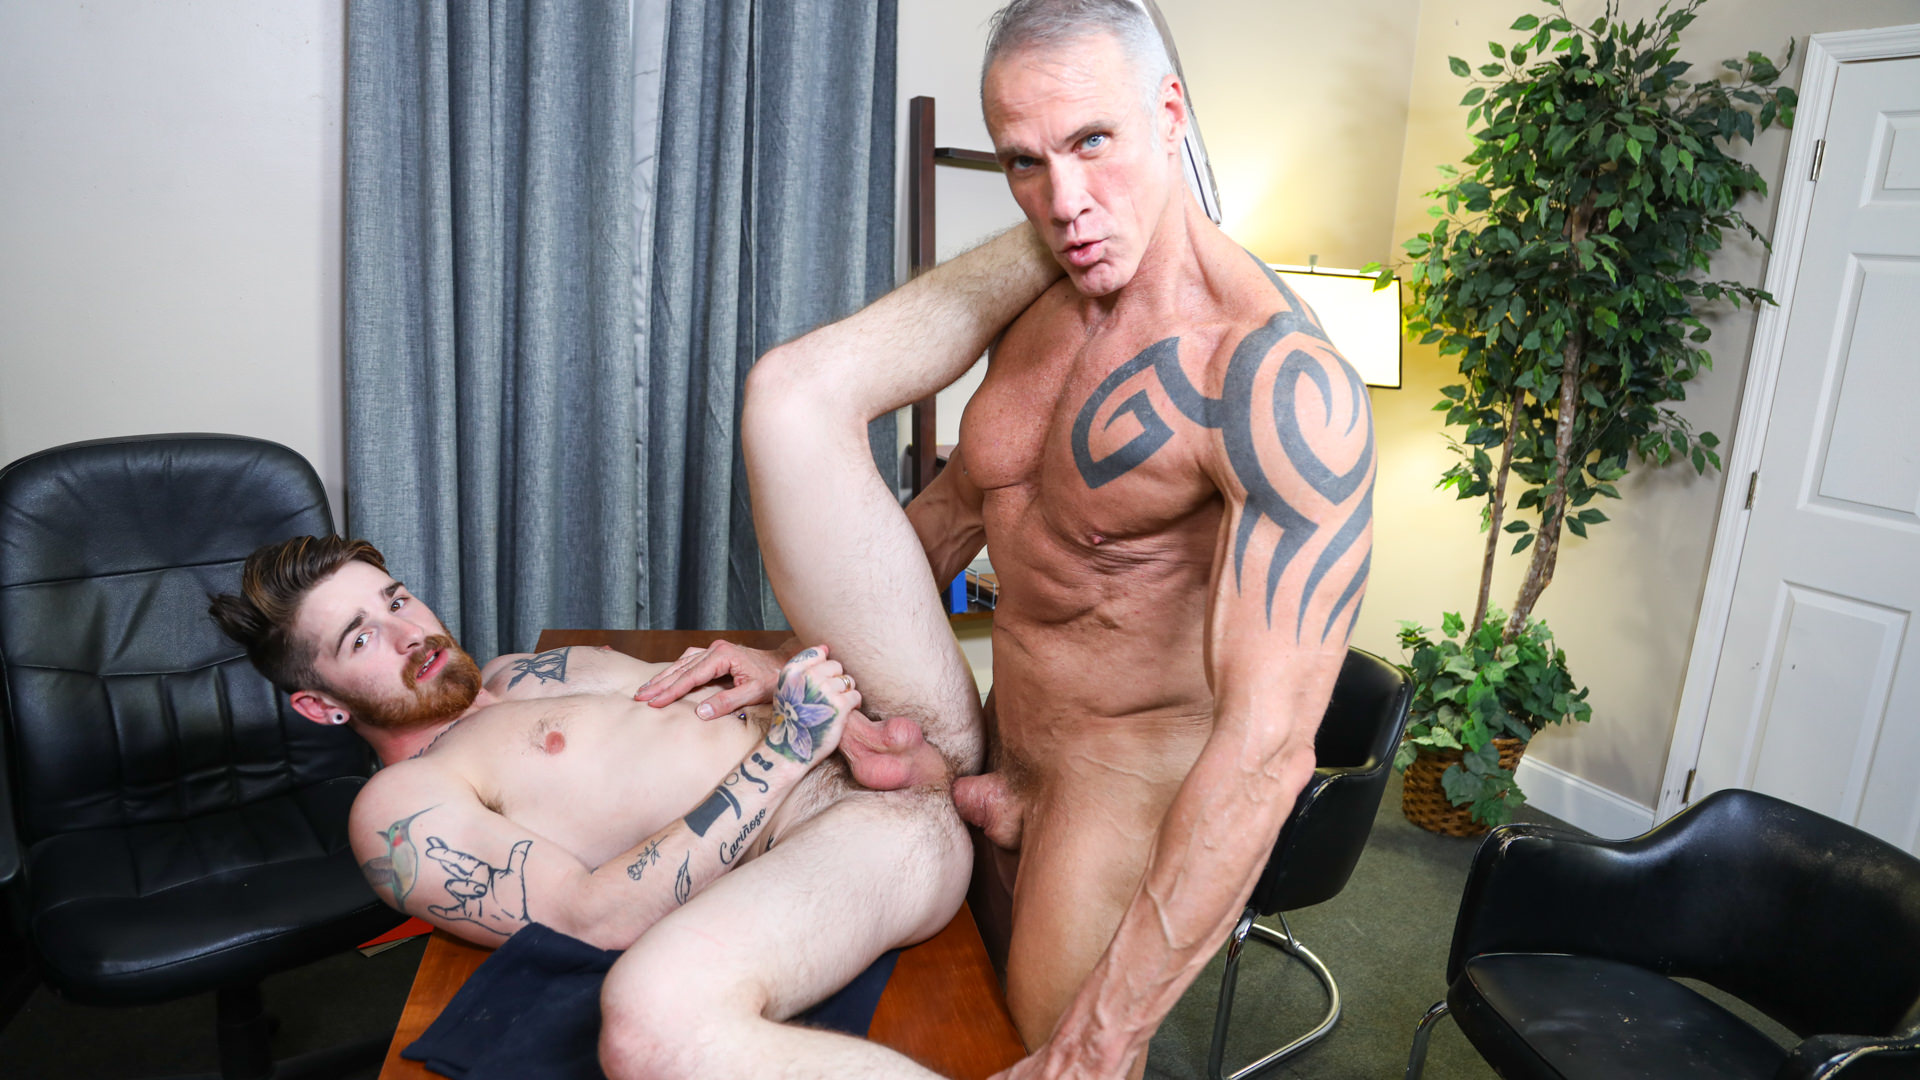 The Principal's Office Part 2 - My Best Friend's Stepdad Is Gay